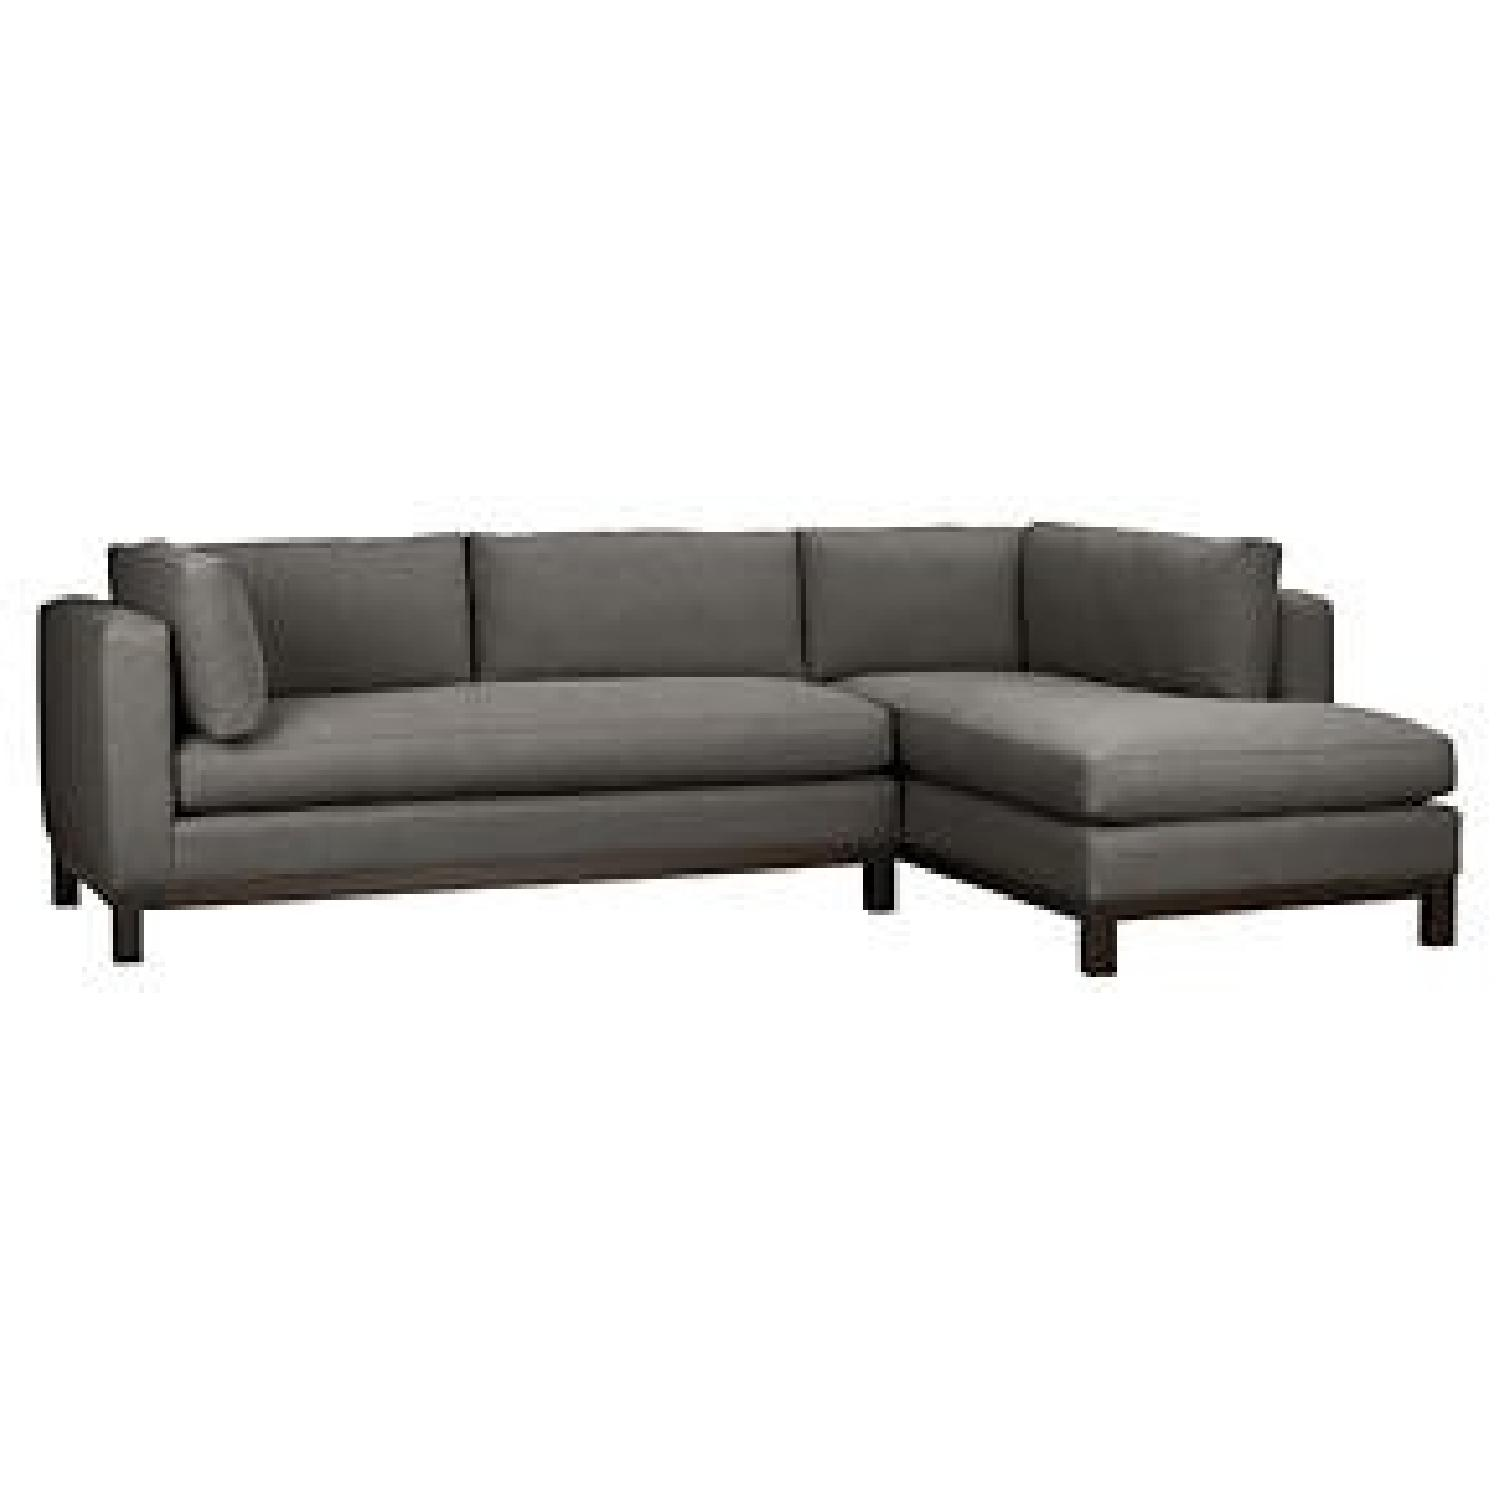 Cool Crate Barrel Delaney 2 Piece Sectional Sofa Aptdeco Gamerscity Chair Design For Home Gamerscityorg